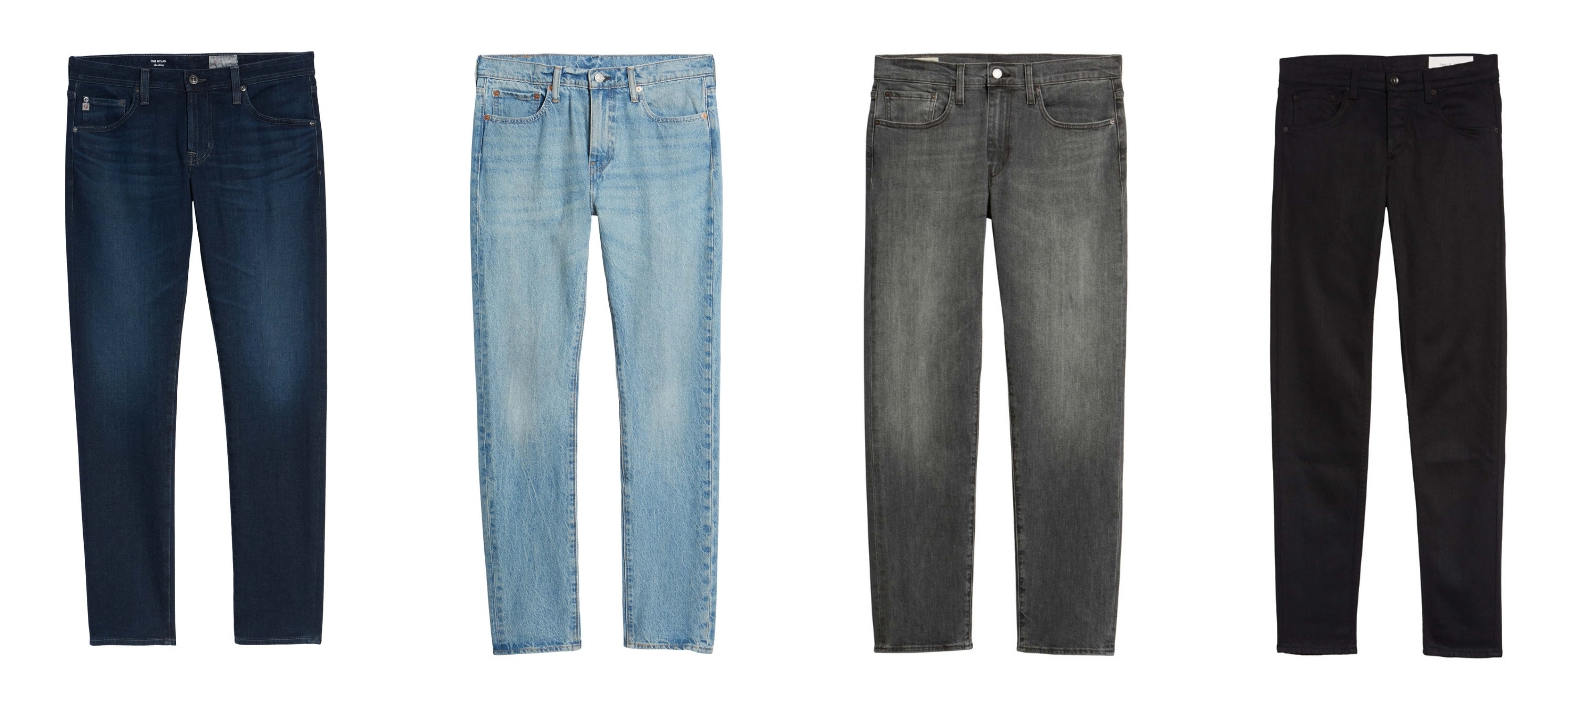 Minimalist jeans collection